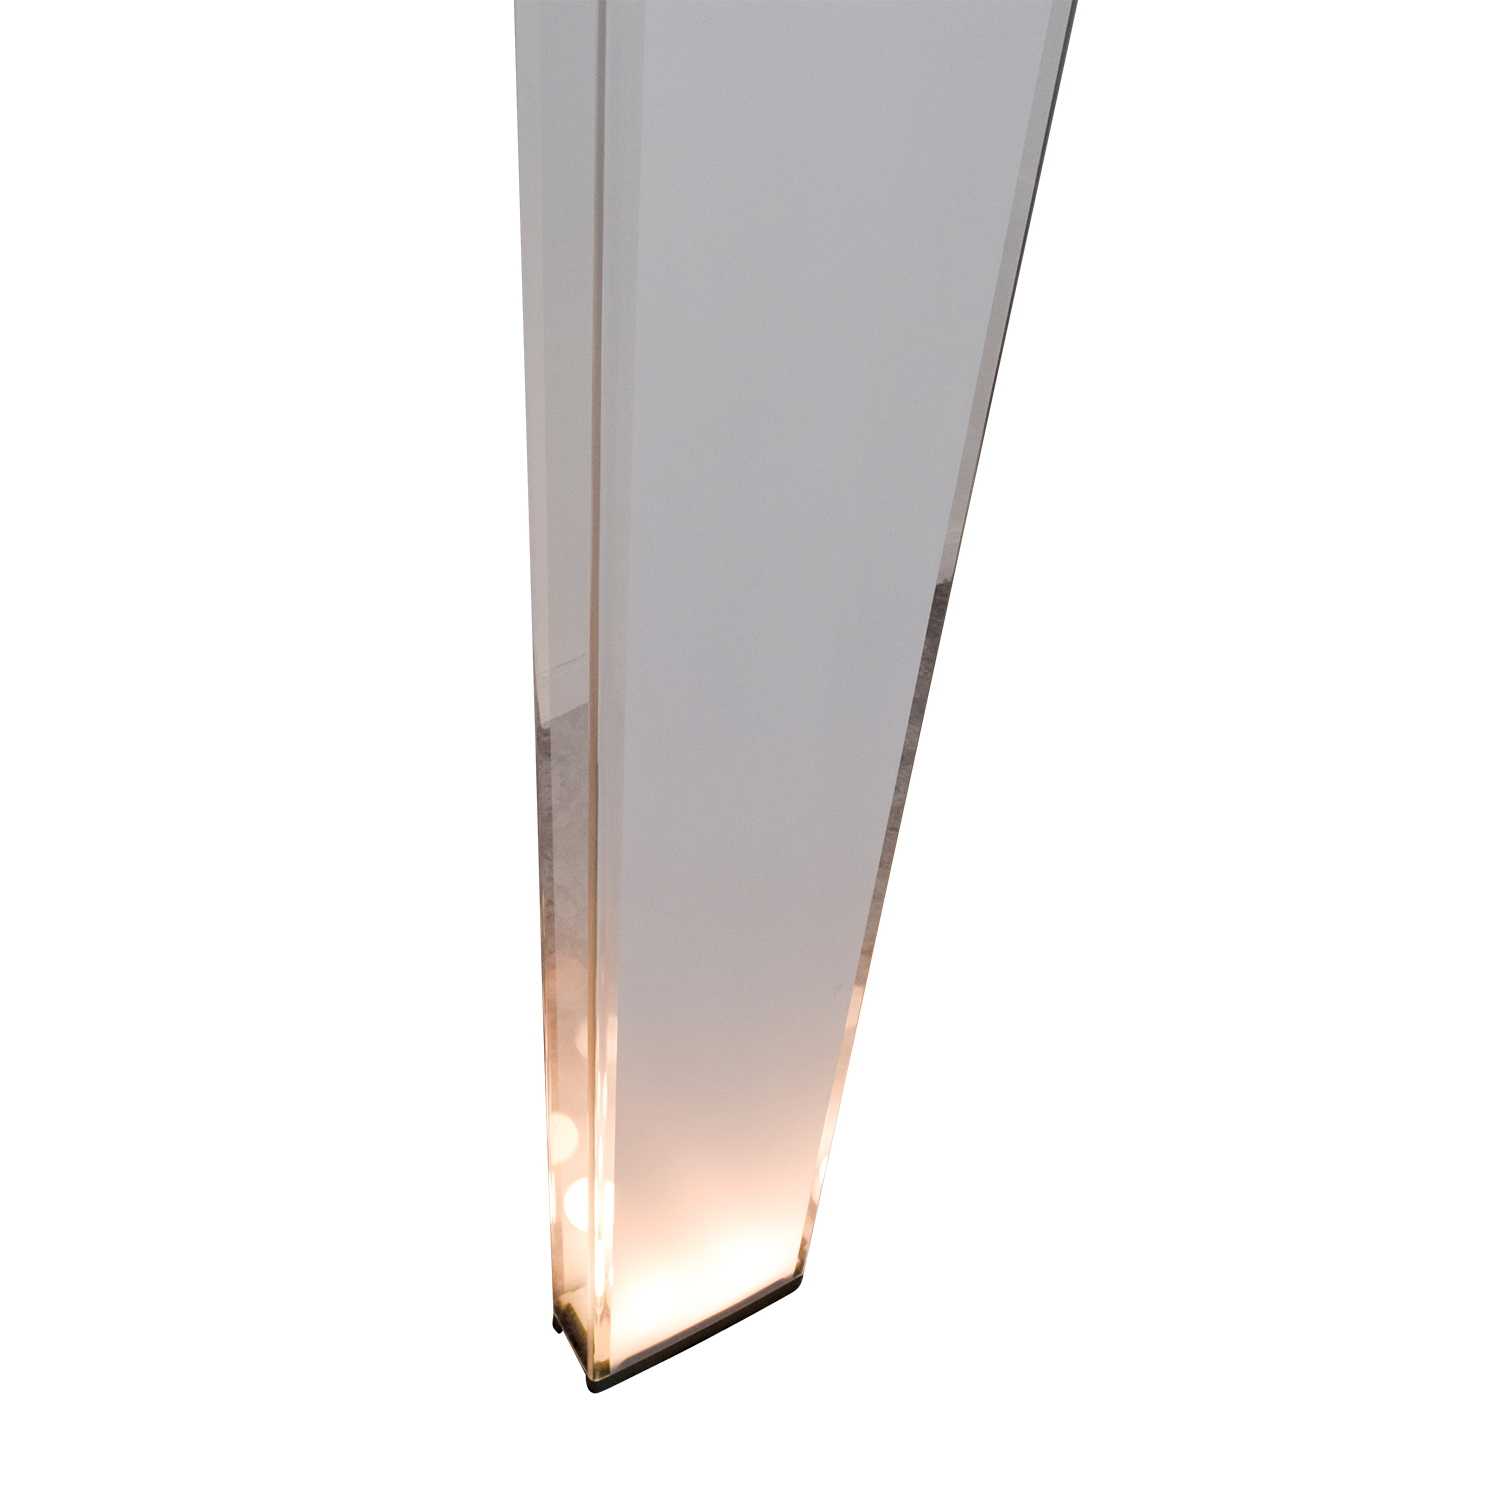 buy Pablo Designs Pablo Designs Floor Lamp online